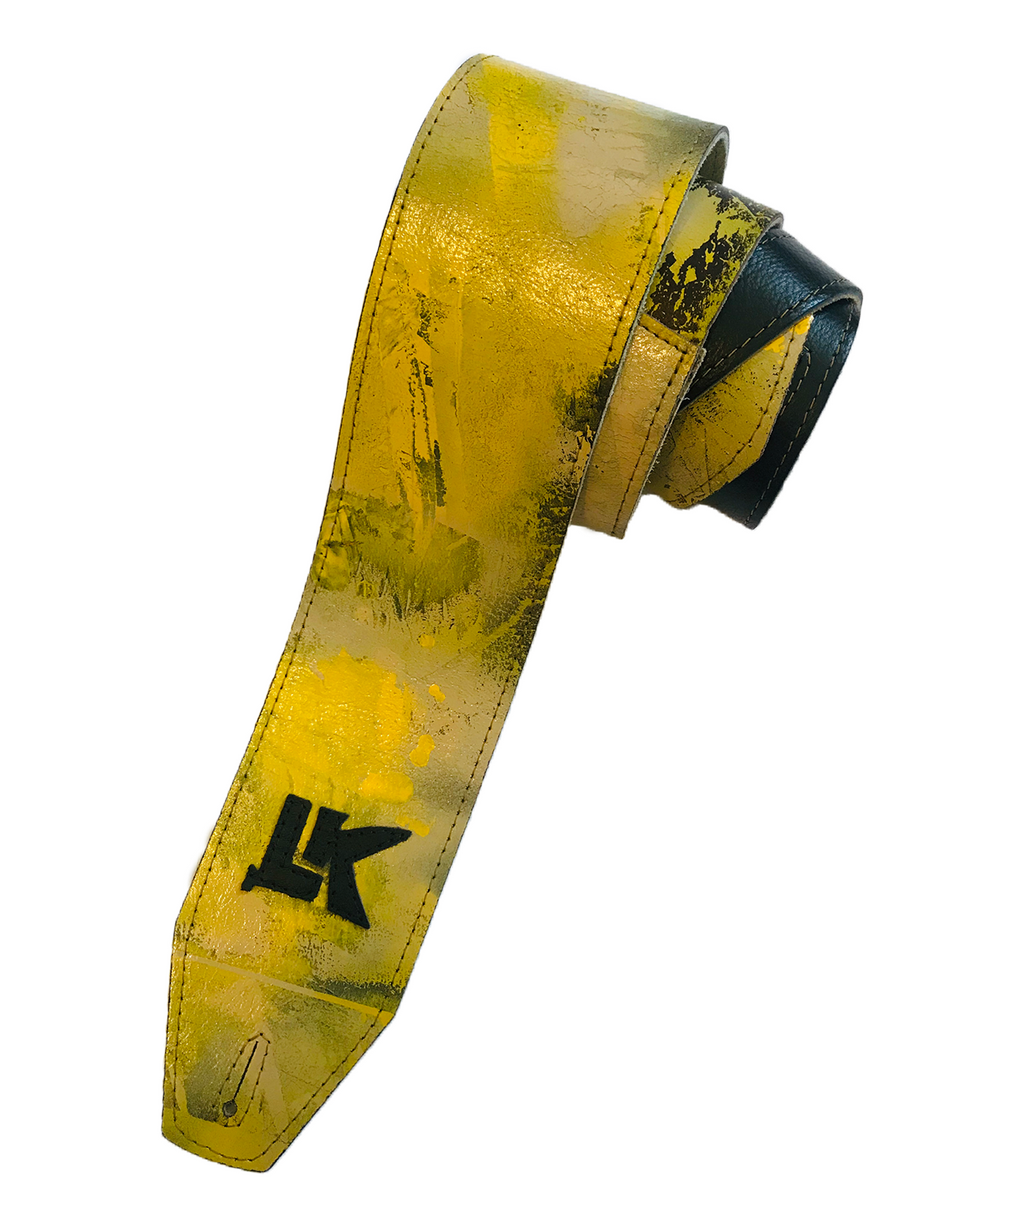 LK Yellow Brown Grey Spray Paint Strap